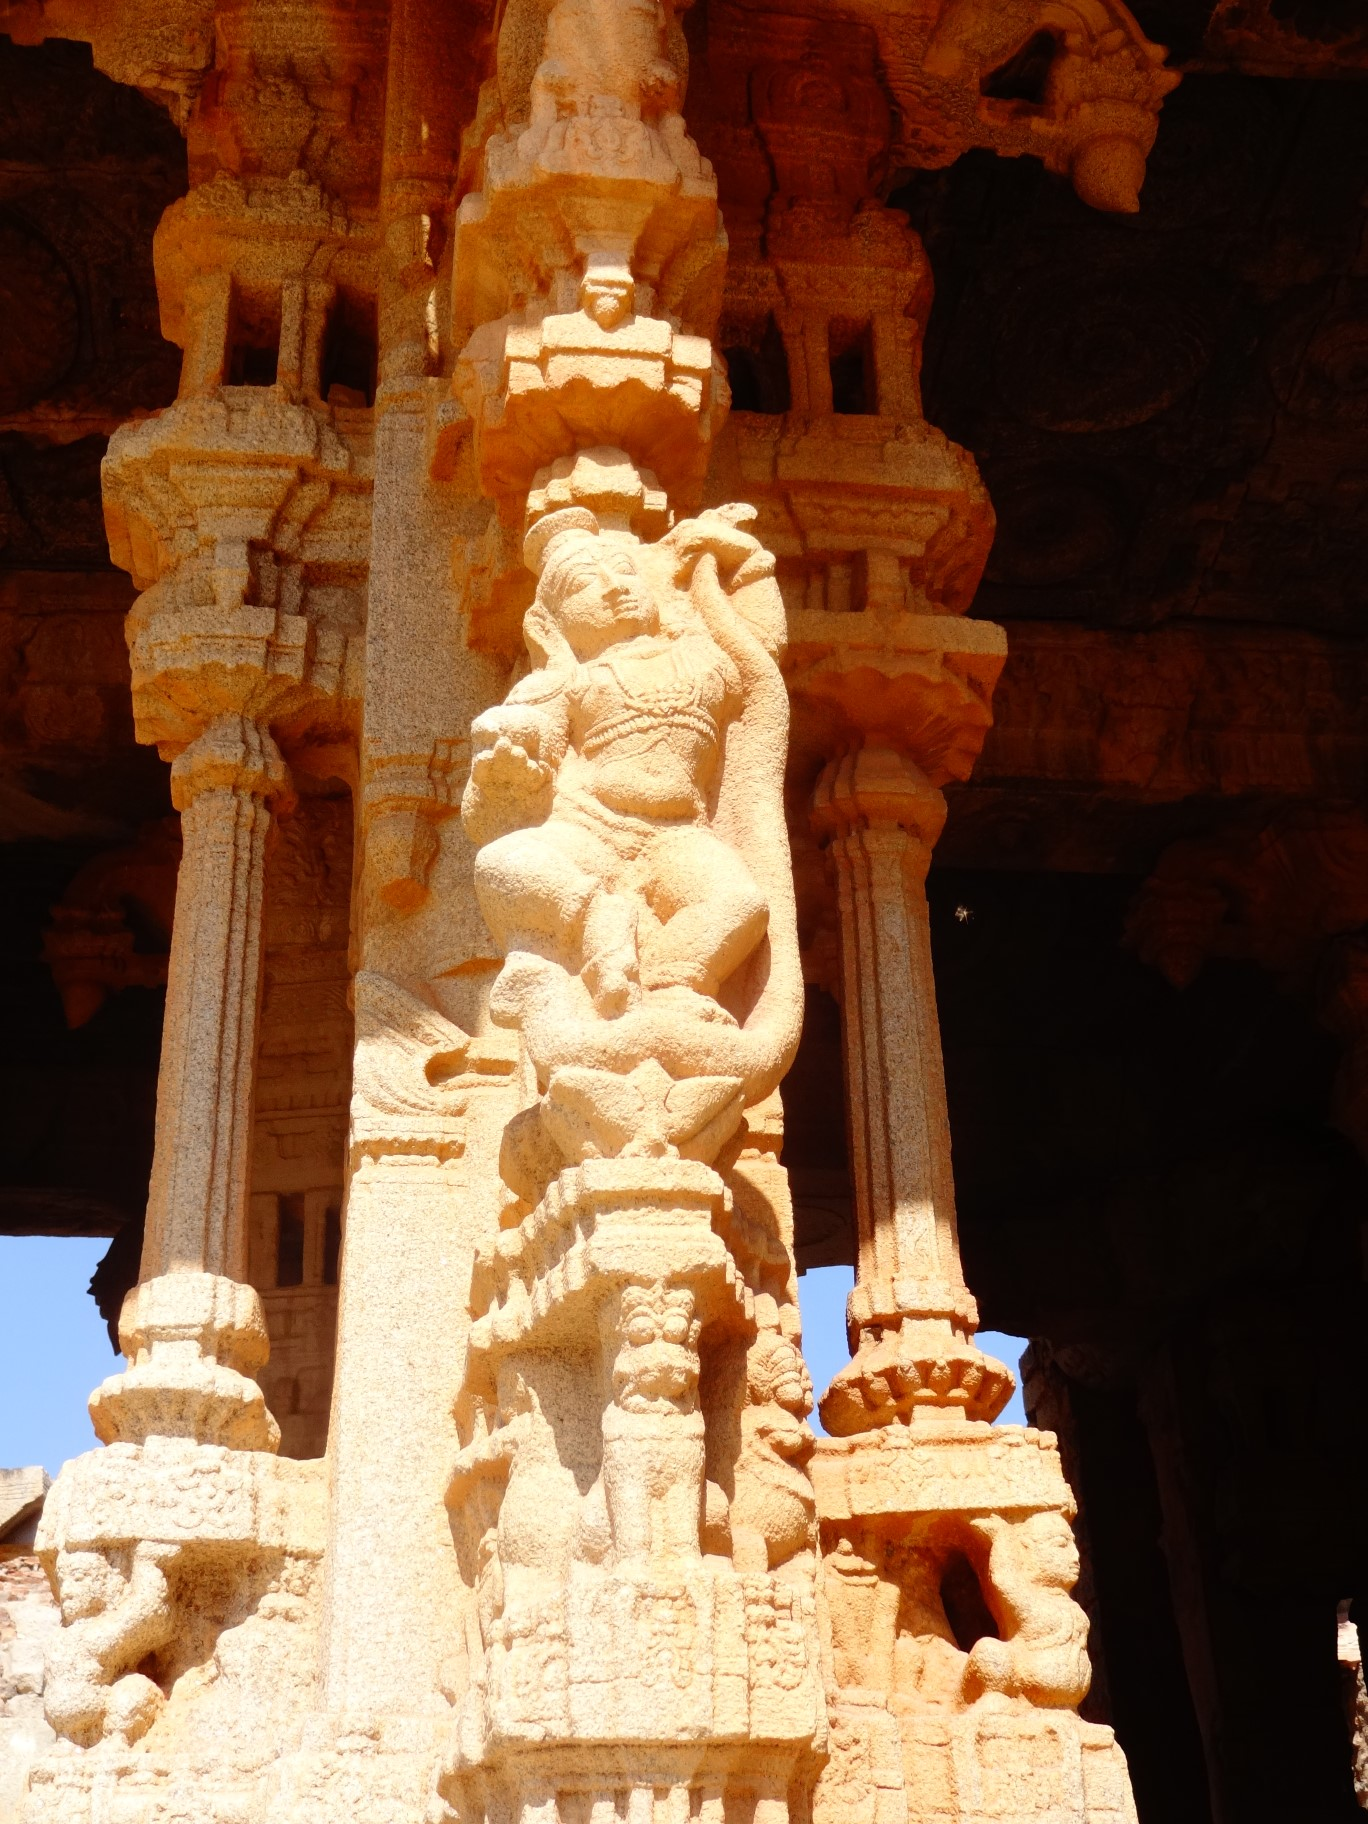 Detailed carvings on the pillars